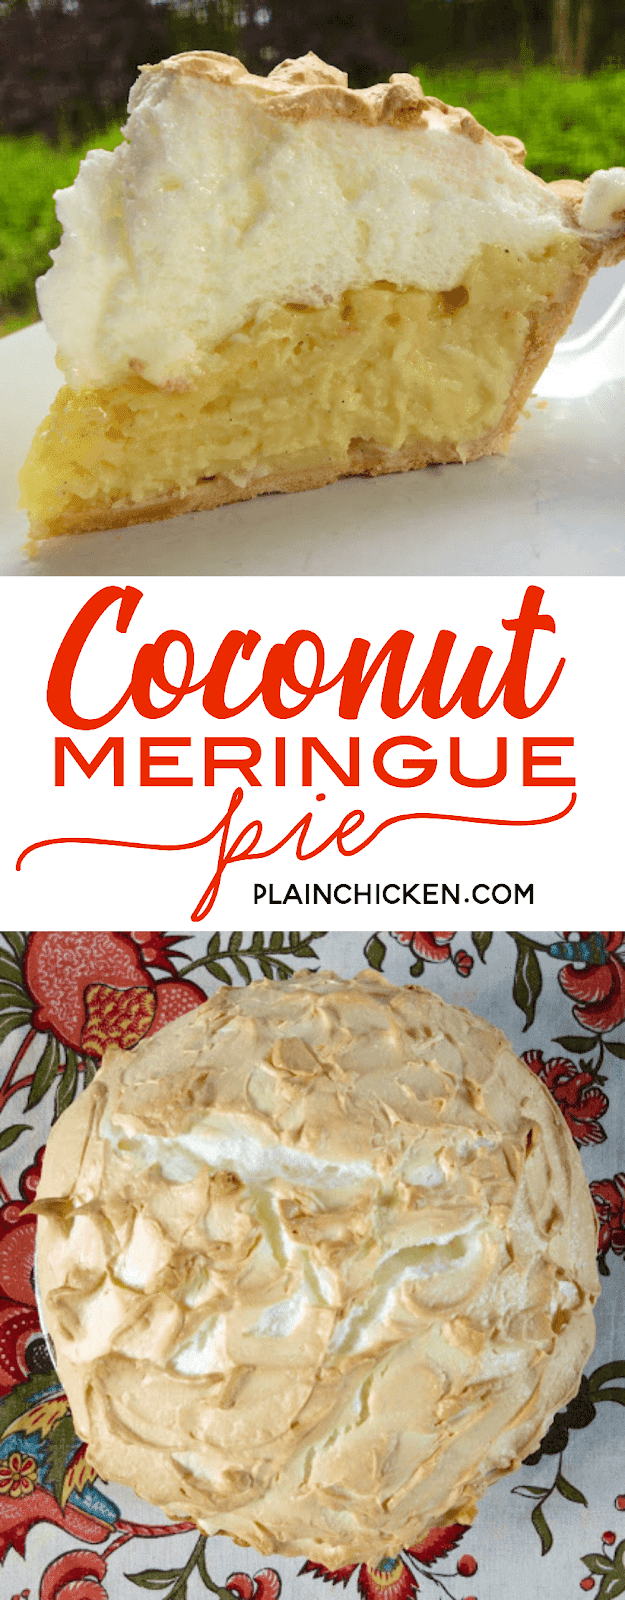 Coconut Meringue Pie - Plain Chicken